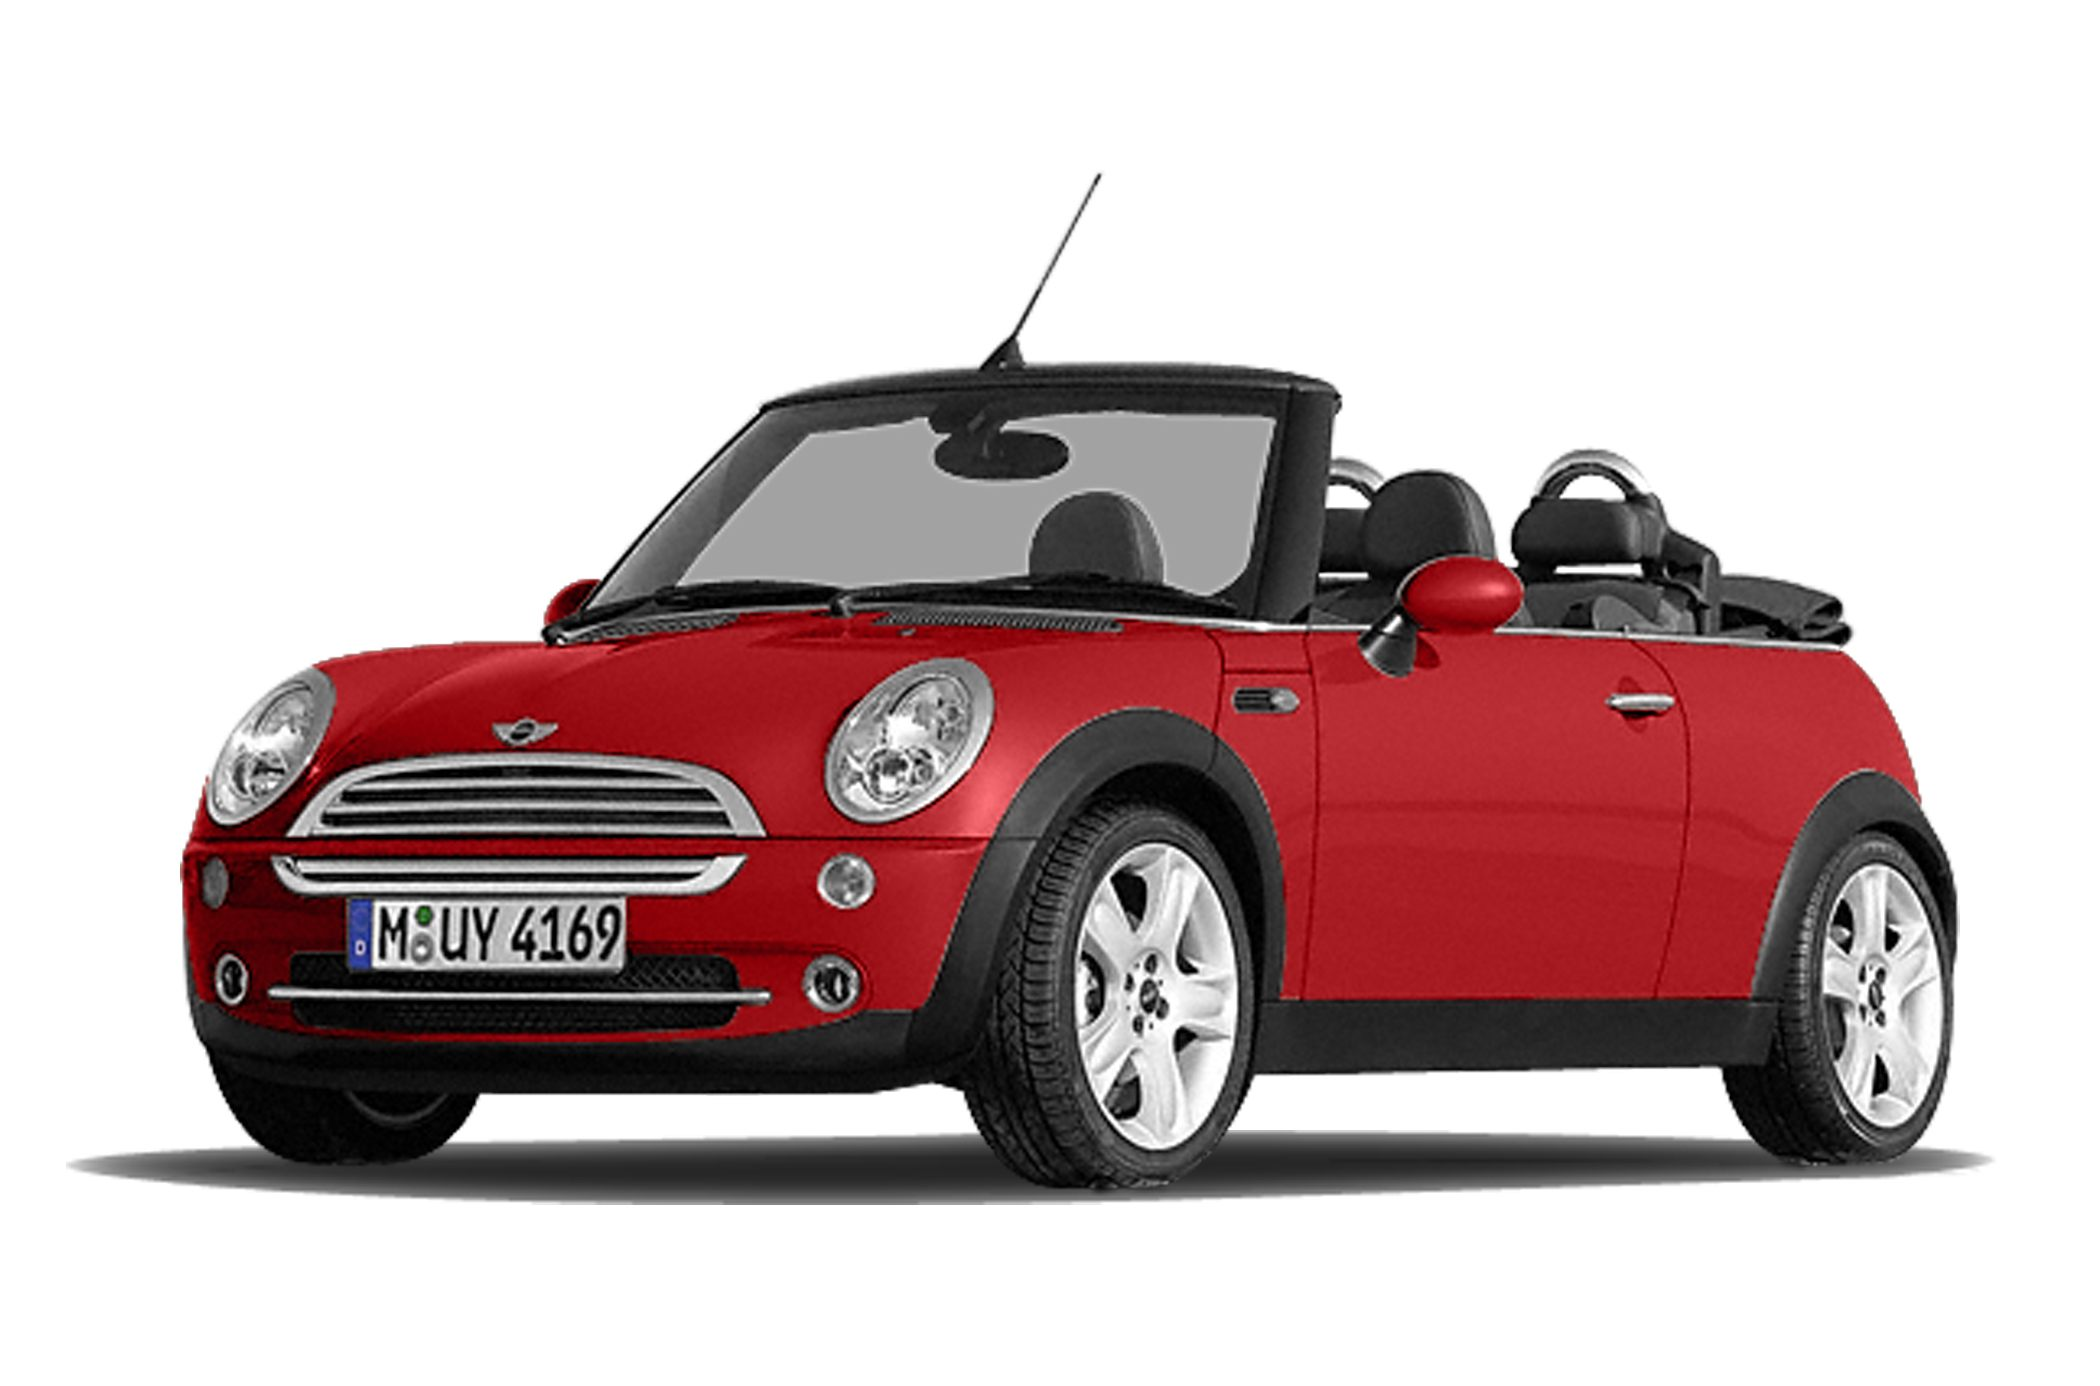 2007 MINI Cooper Hatchback for sale in Lafayette for $10,995 with 67,070 miles